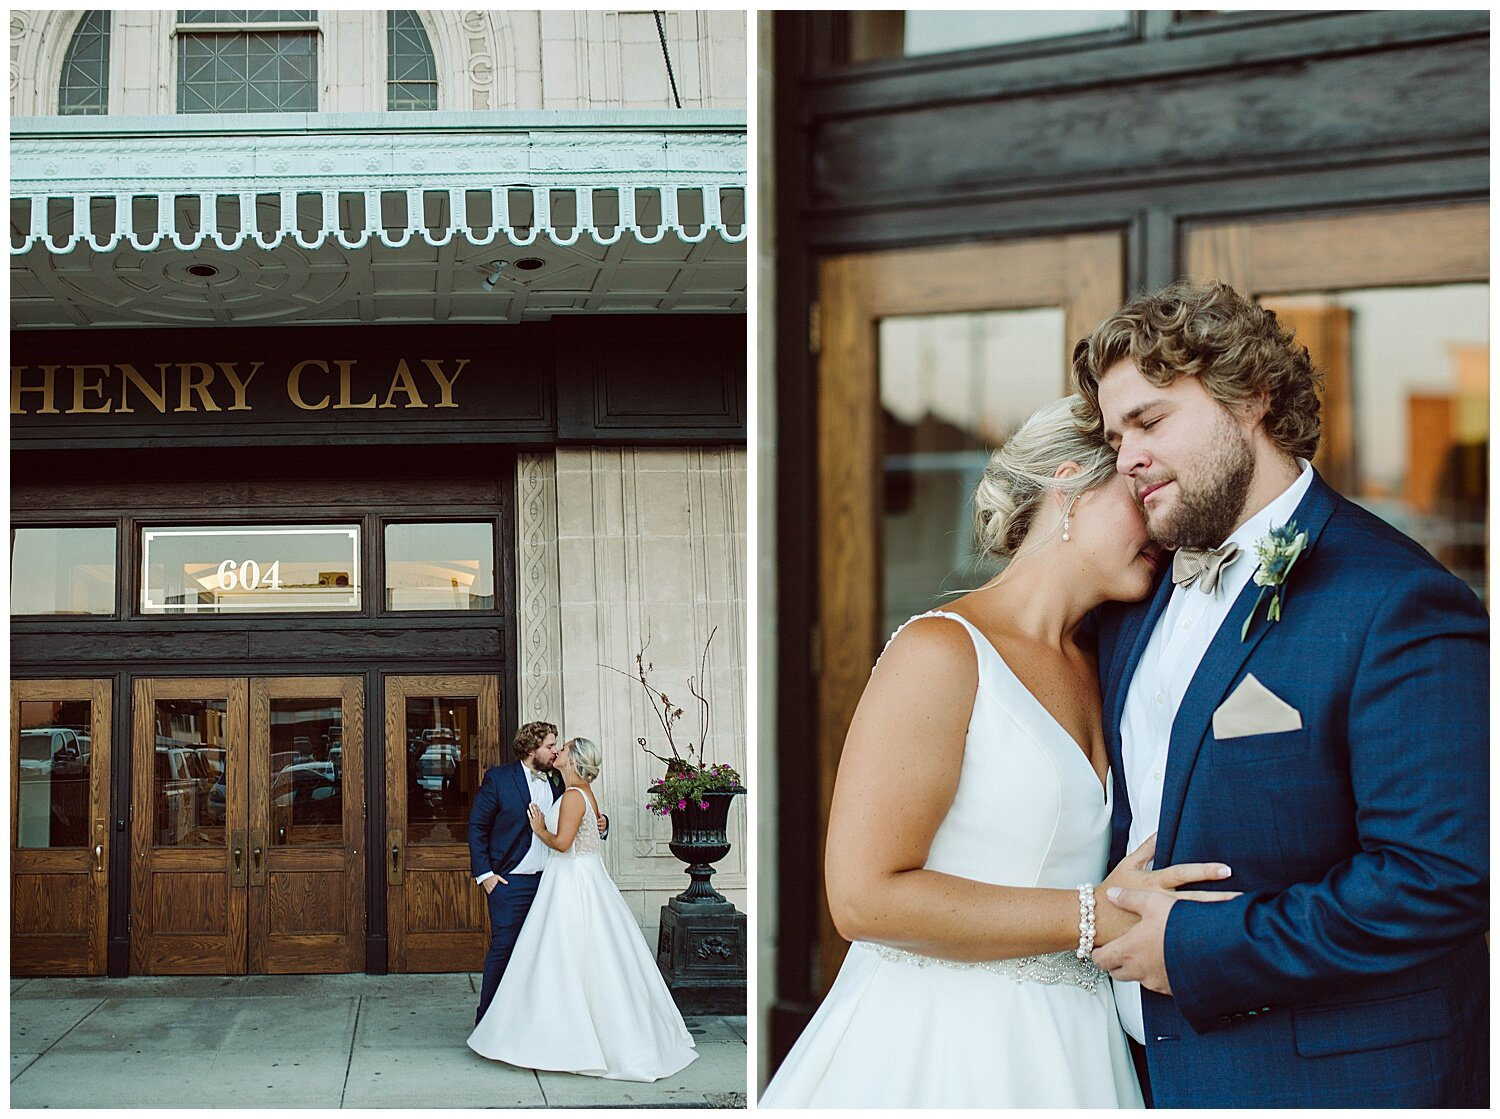 trent.and.kendra.photography.the.henry.clay.louisville.wedding-131.jpg